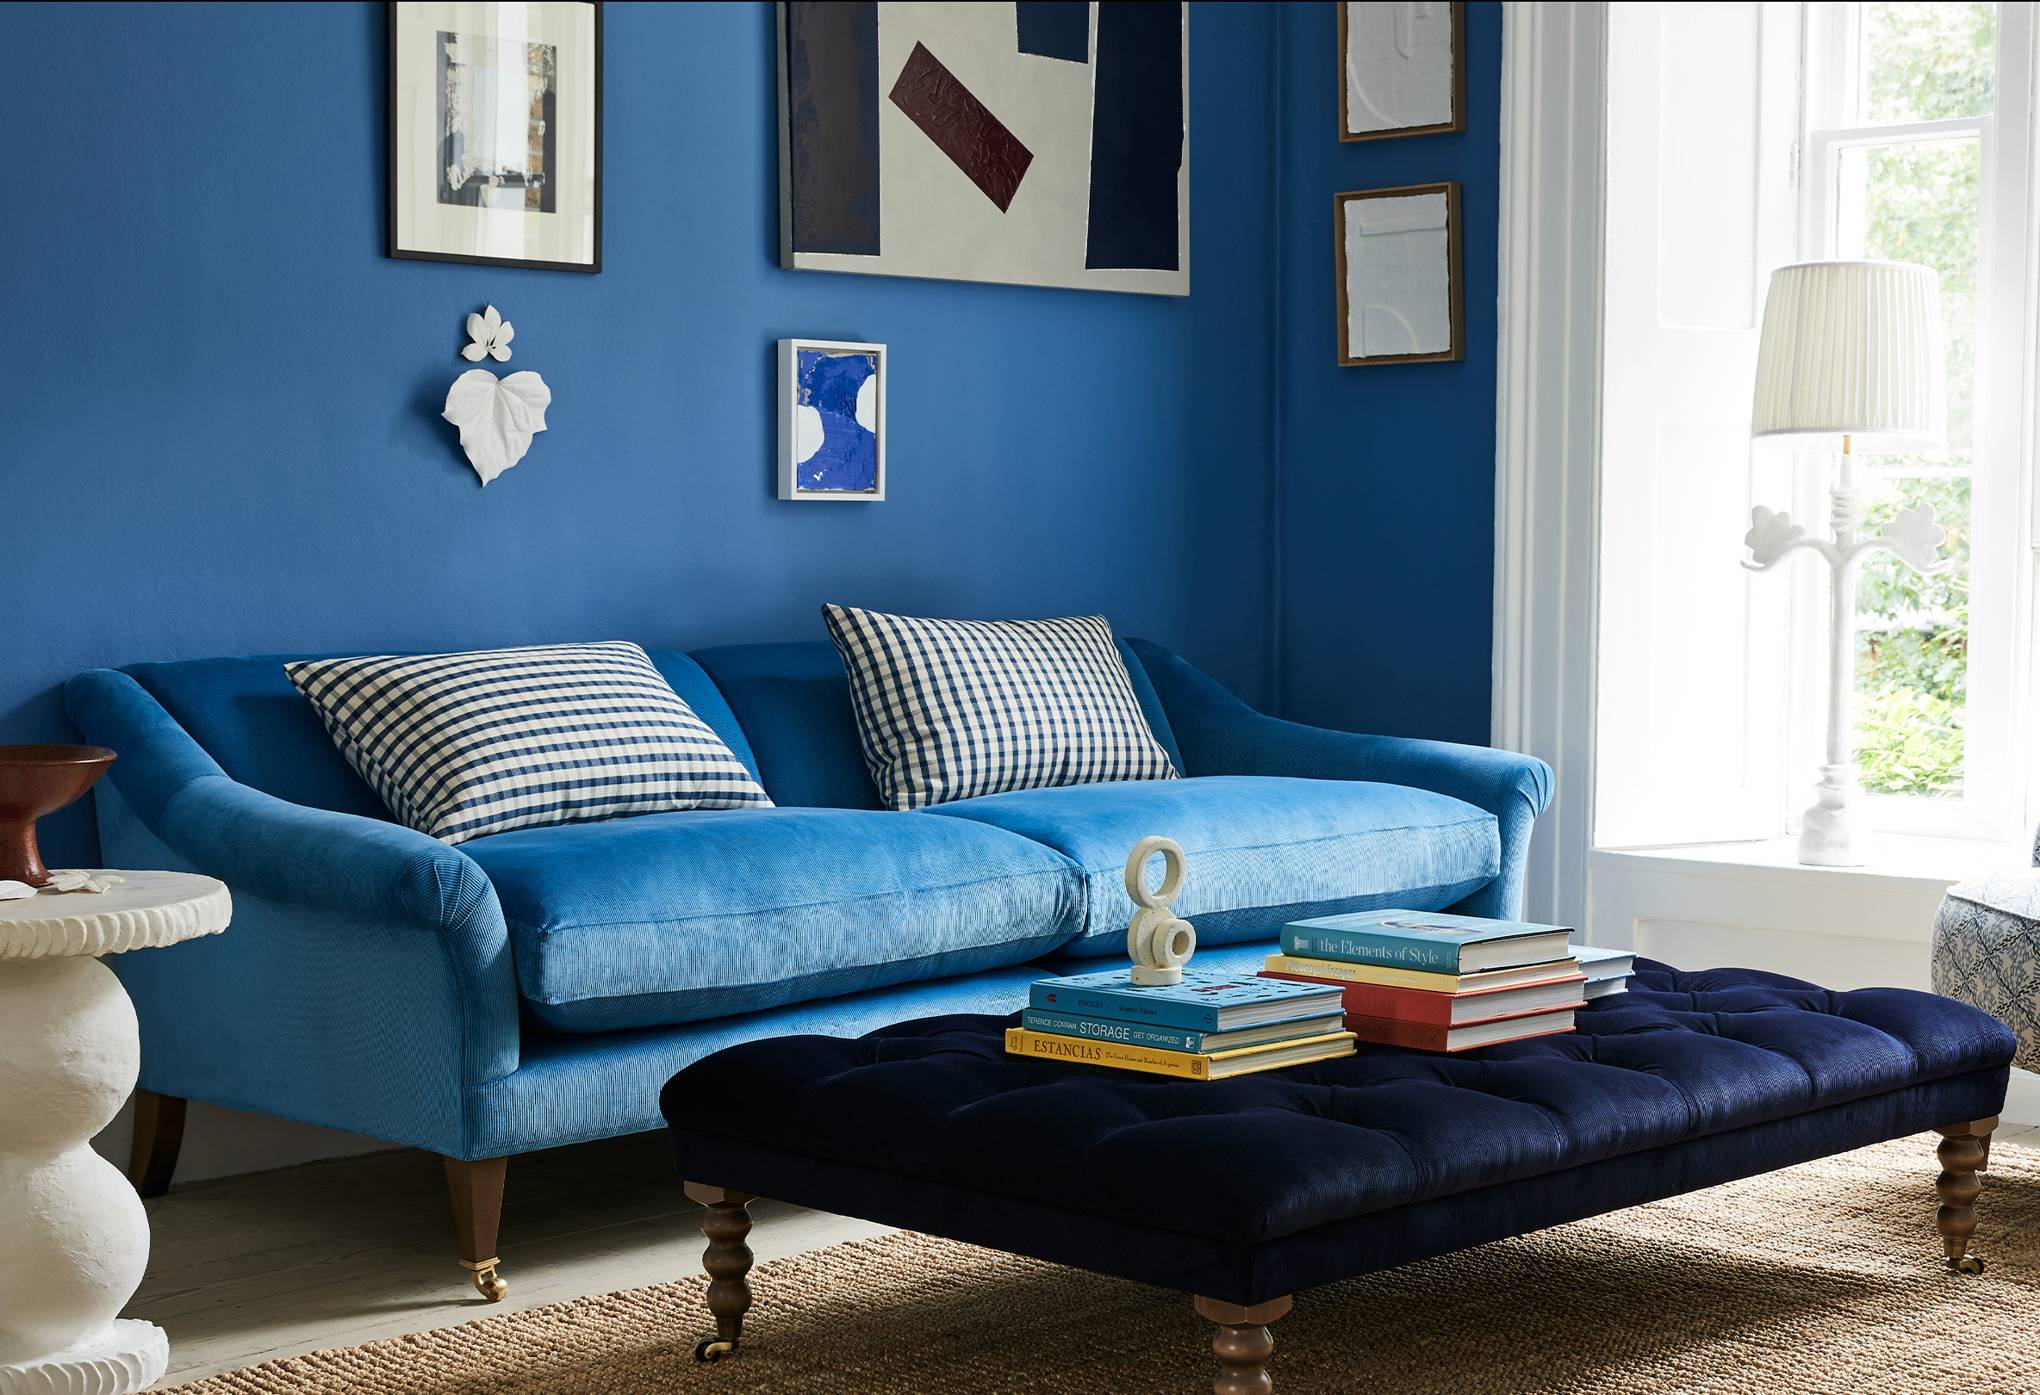 House & Garden adds a graceful new sofa to its collection with Arlo & Jacob